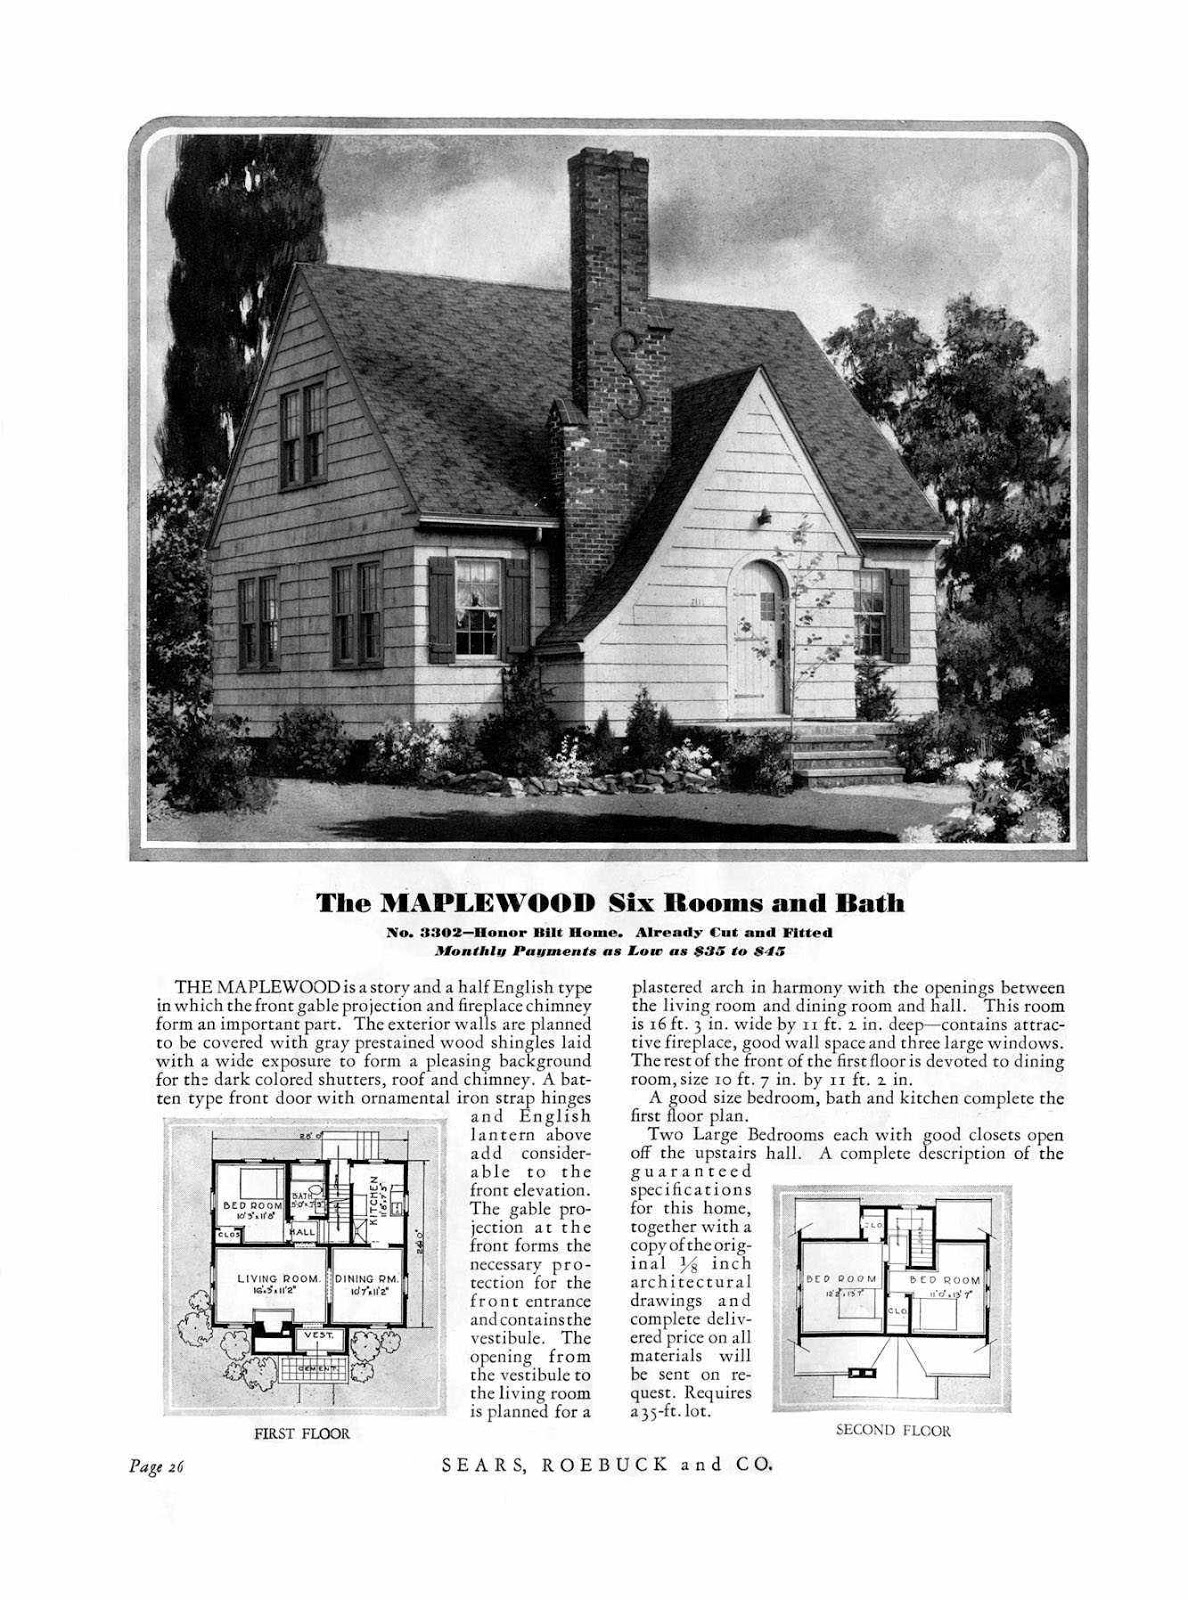 Kit house hunters sears houses of ferndale michigan for House catalogs